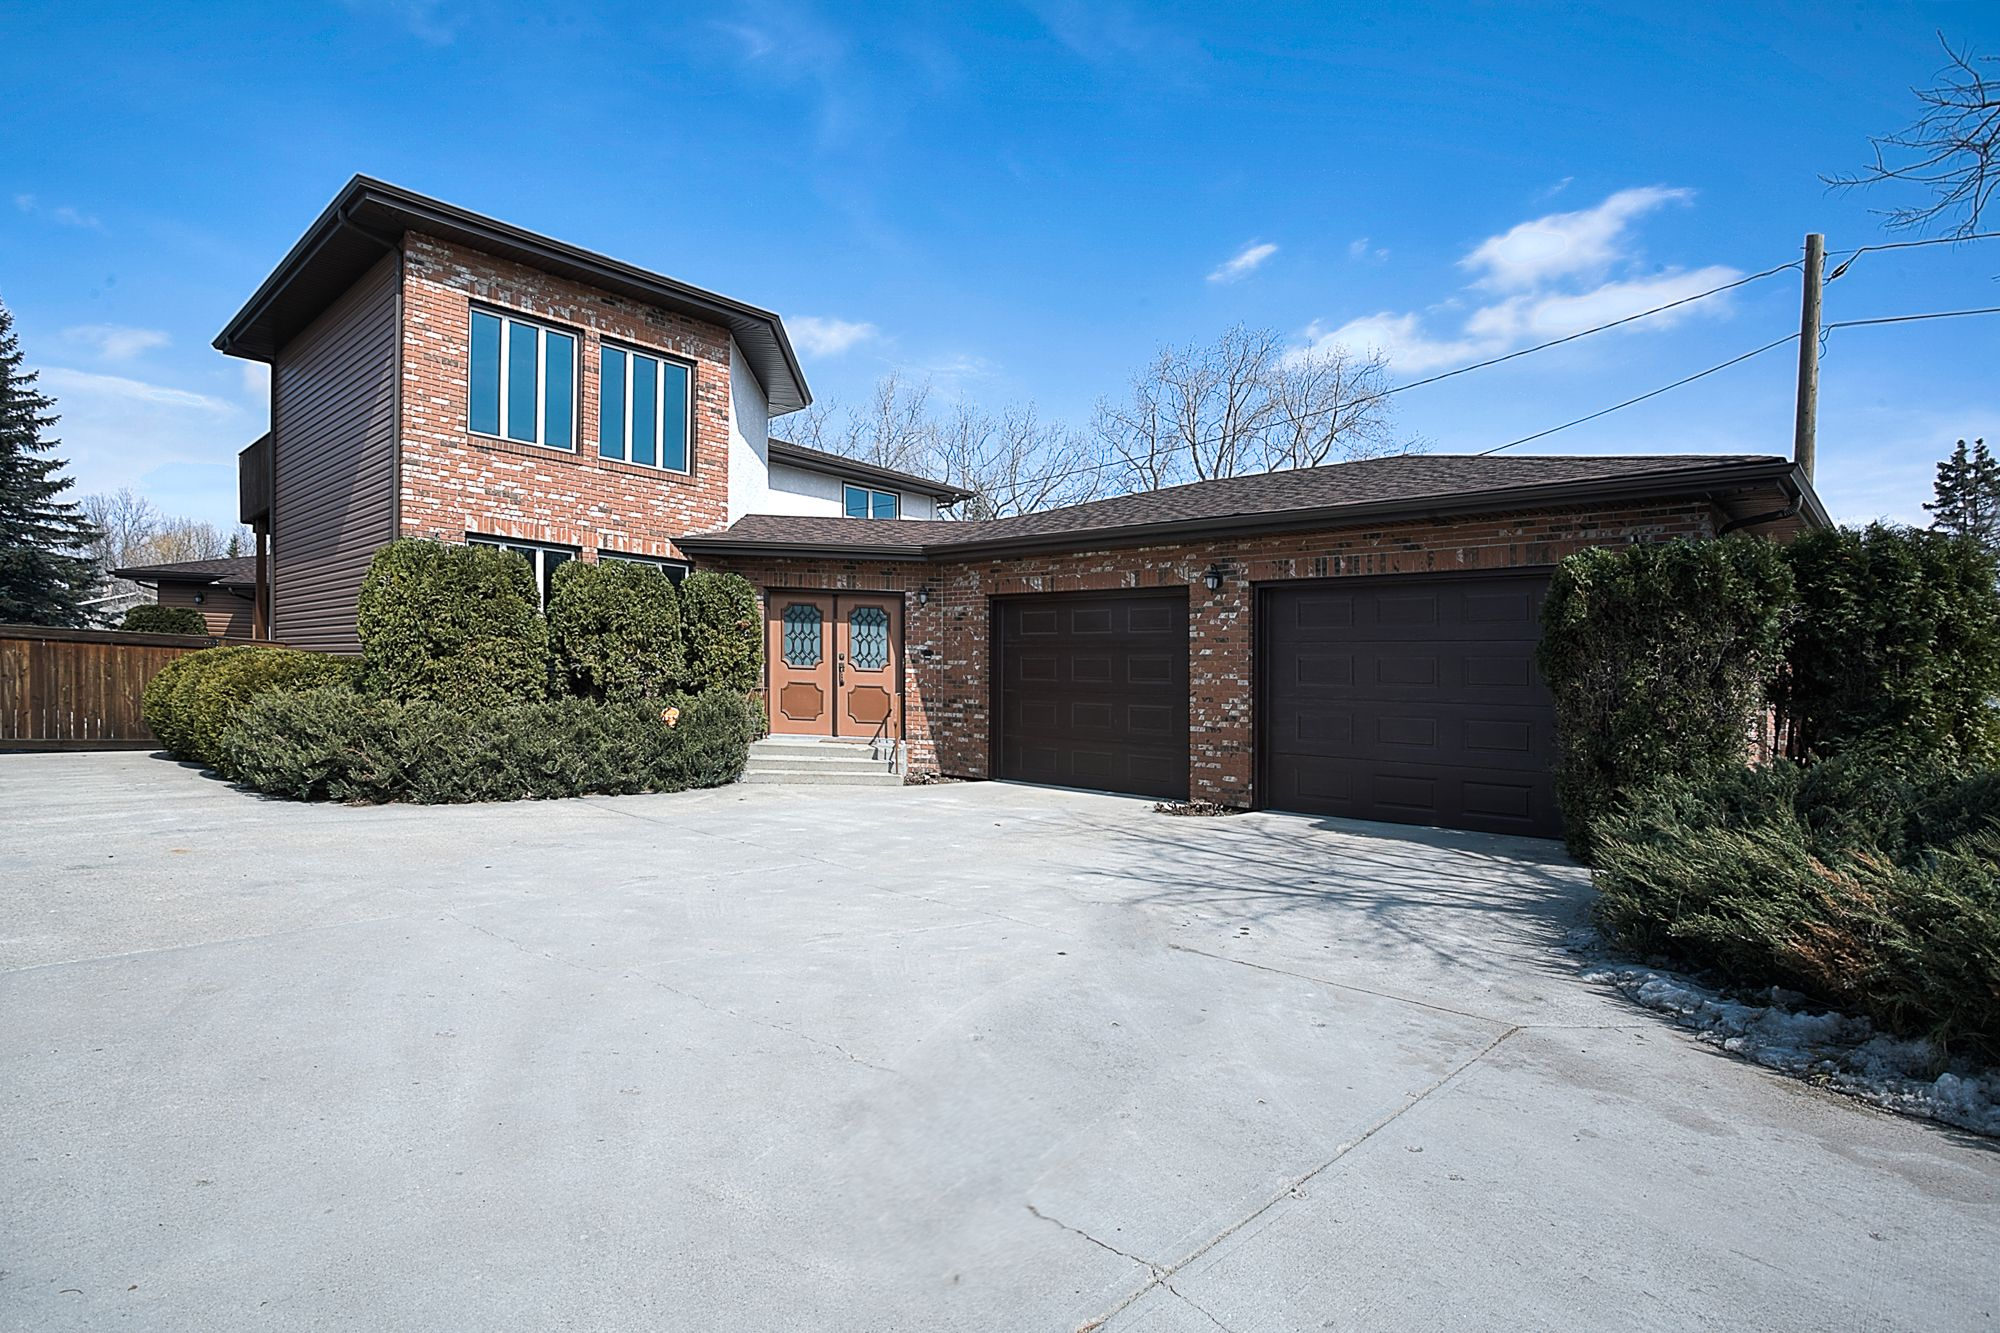 Main Photo: 1145 Des Trappistes Street in Winnipeg: St Norbert Single Family Detached for sale (1Q)  : MLS®# 1808165